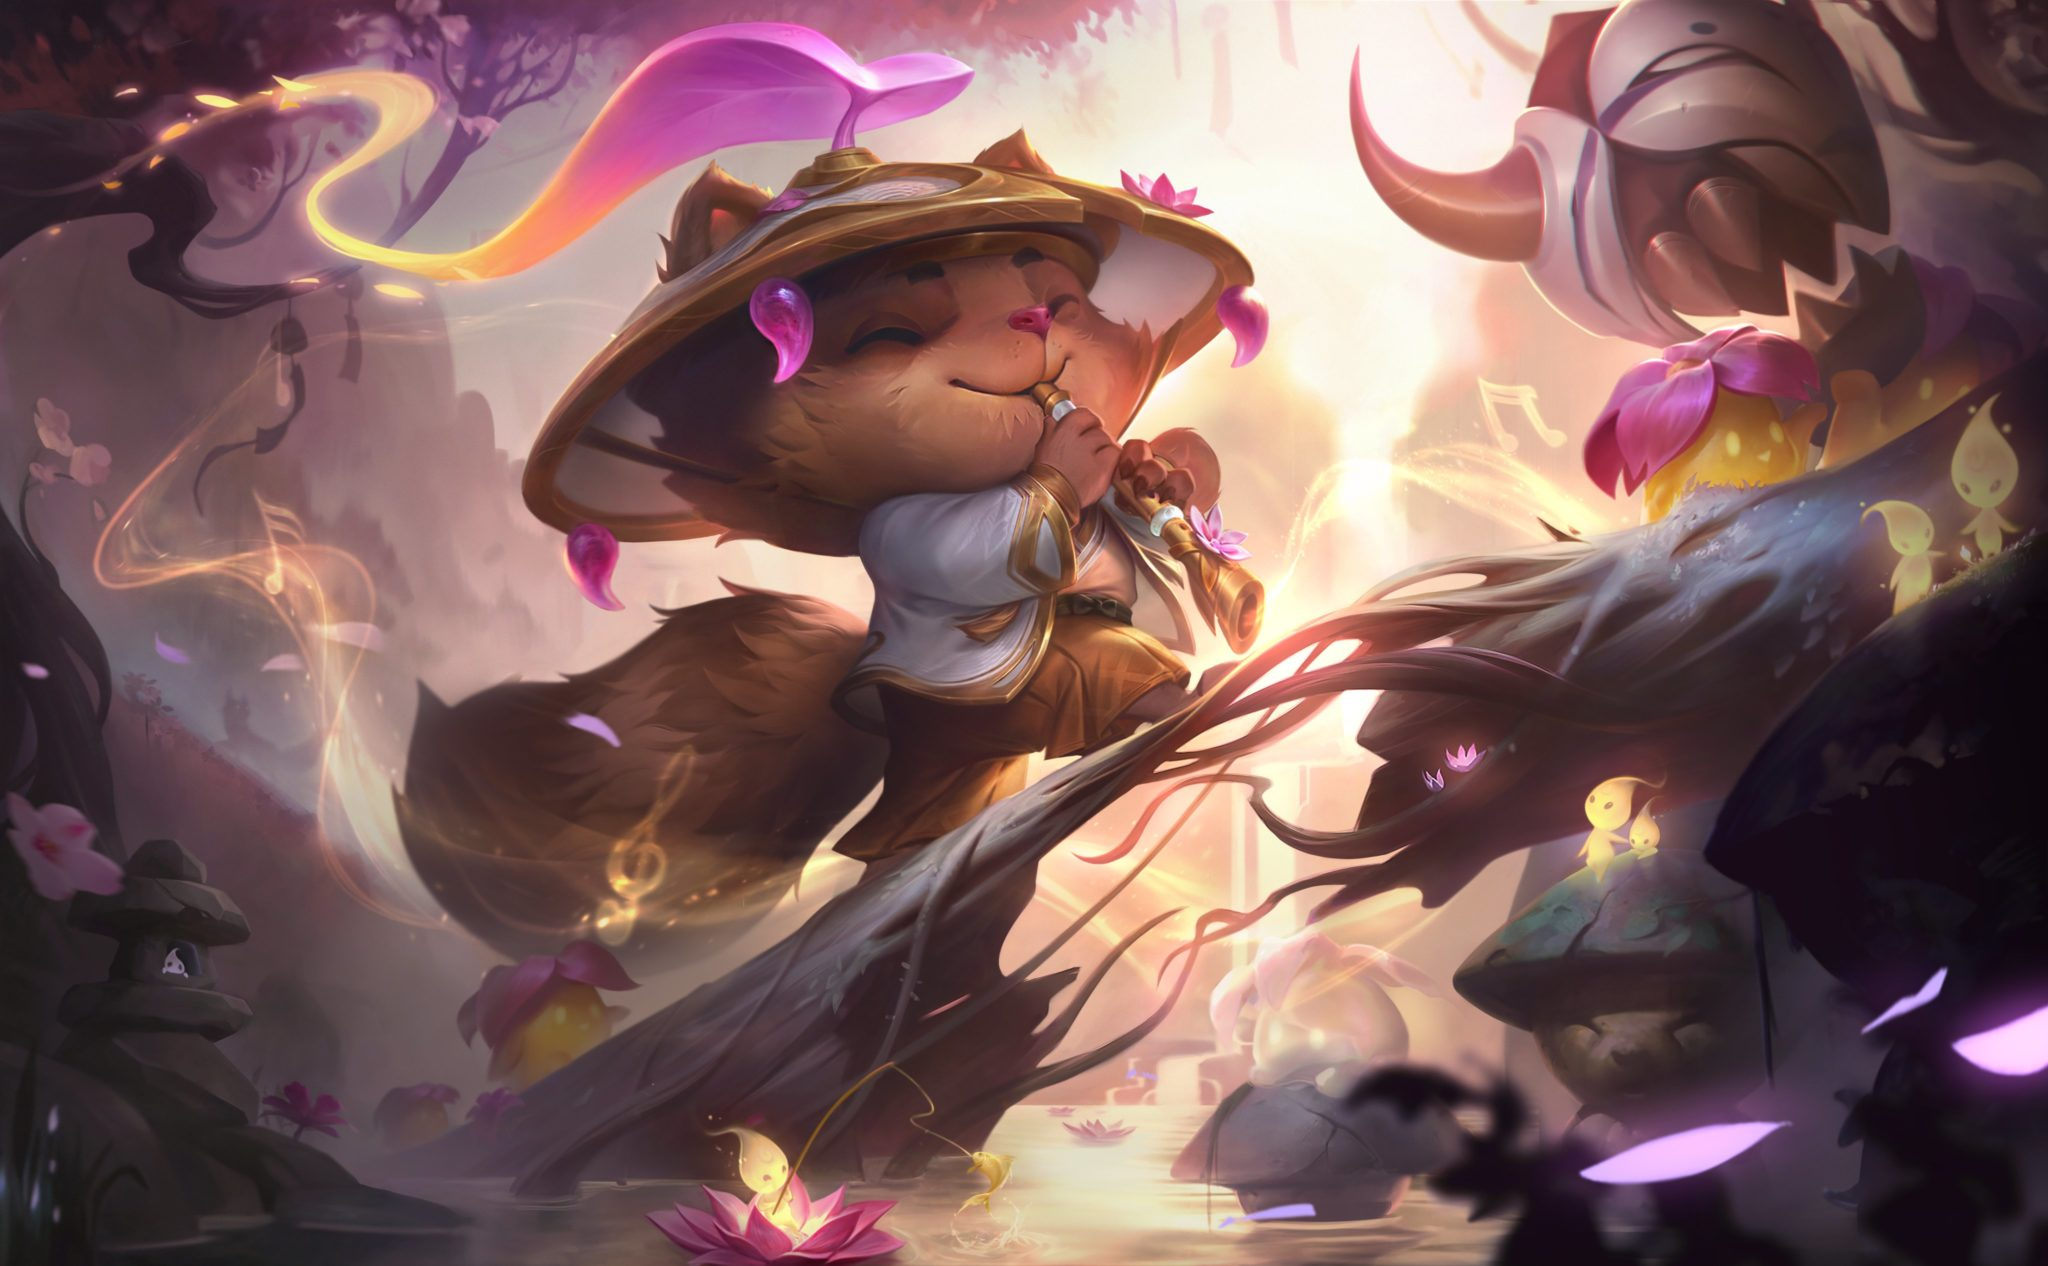 Teemo gets the Spirit Blossom Prestige skin for this event.